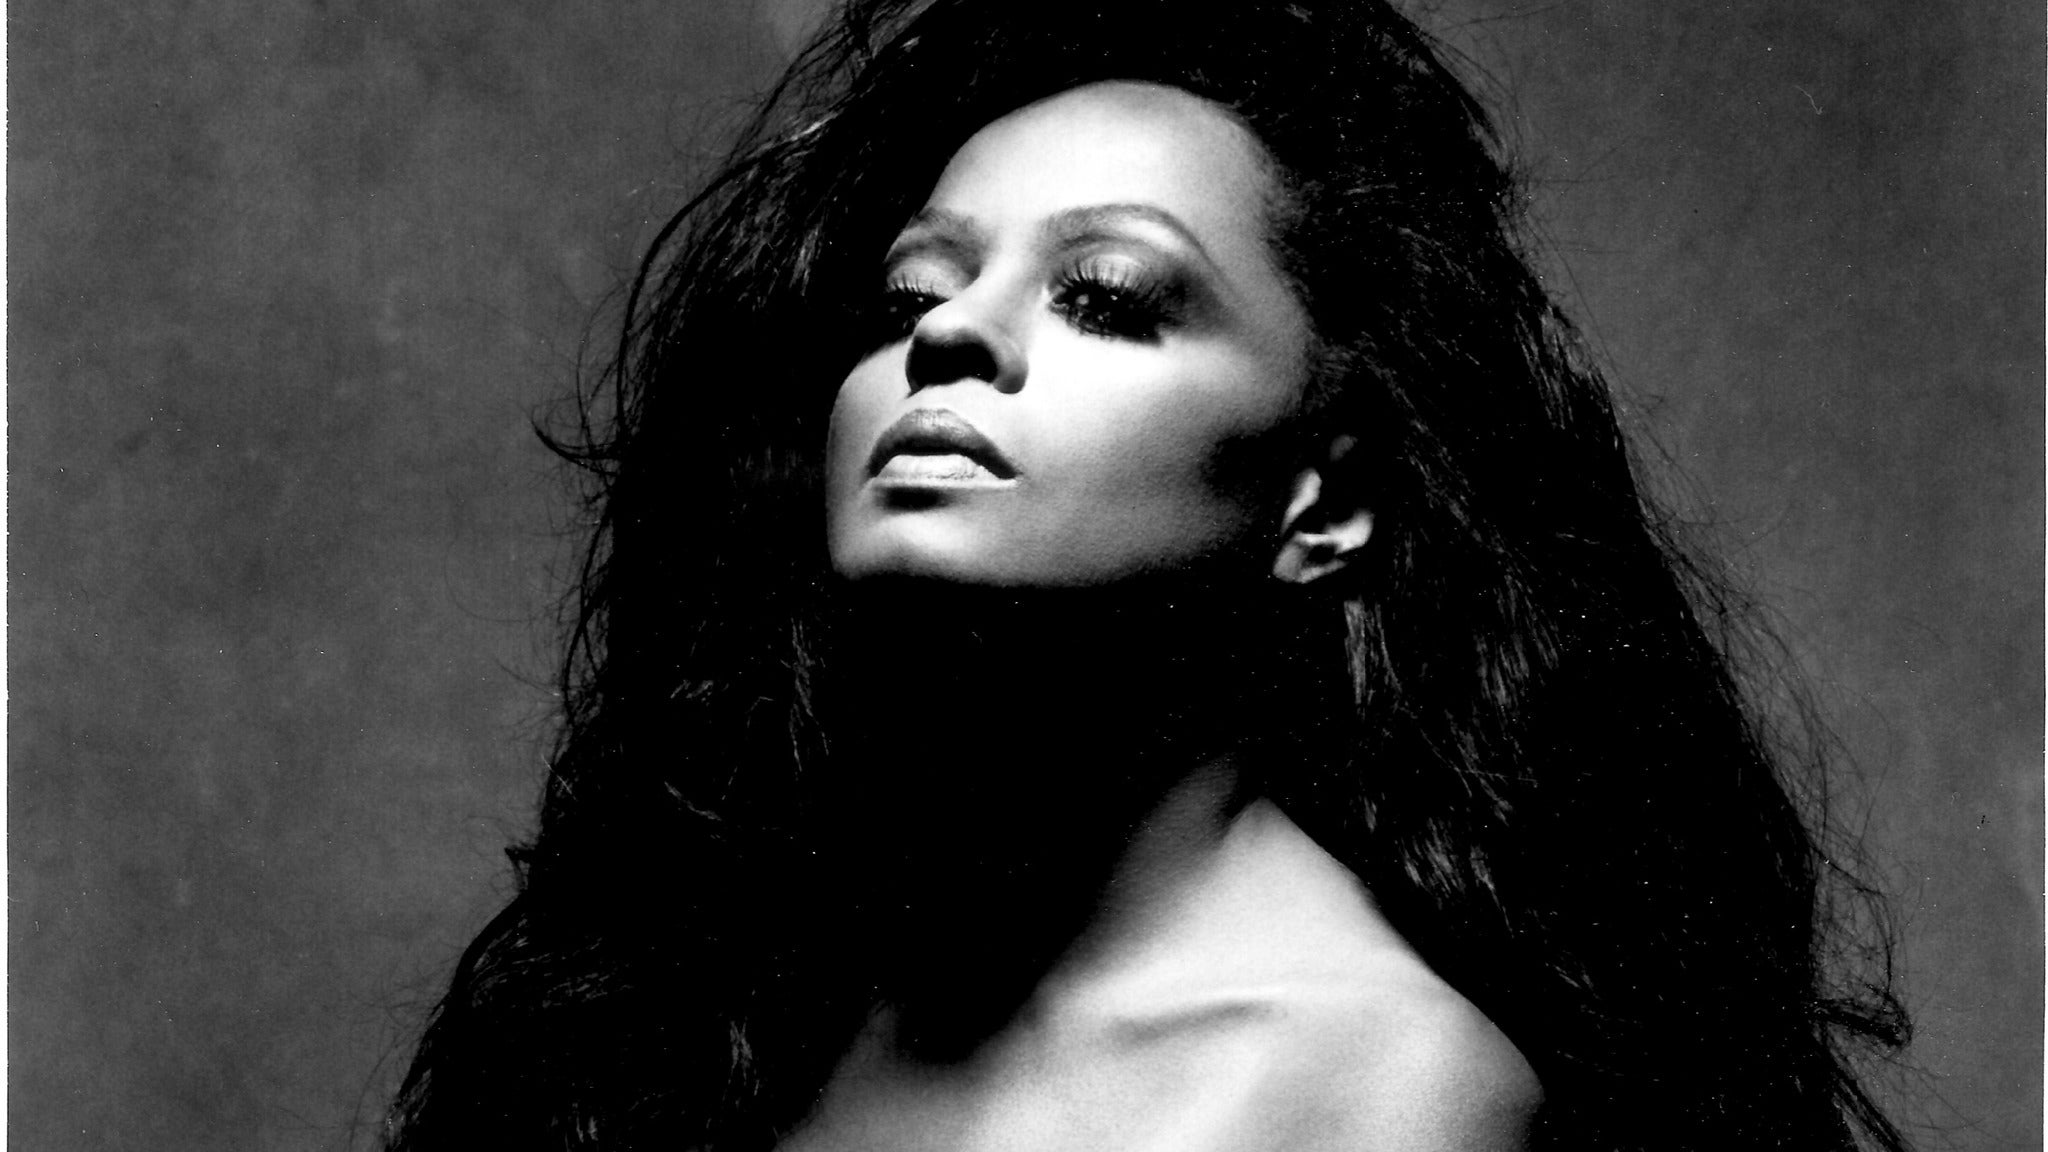 Diana Ross at Ruth Eckerd Hall